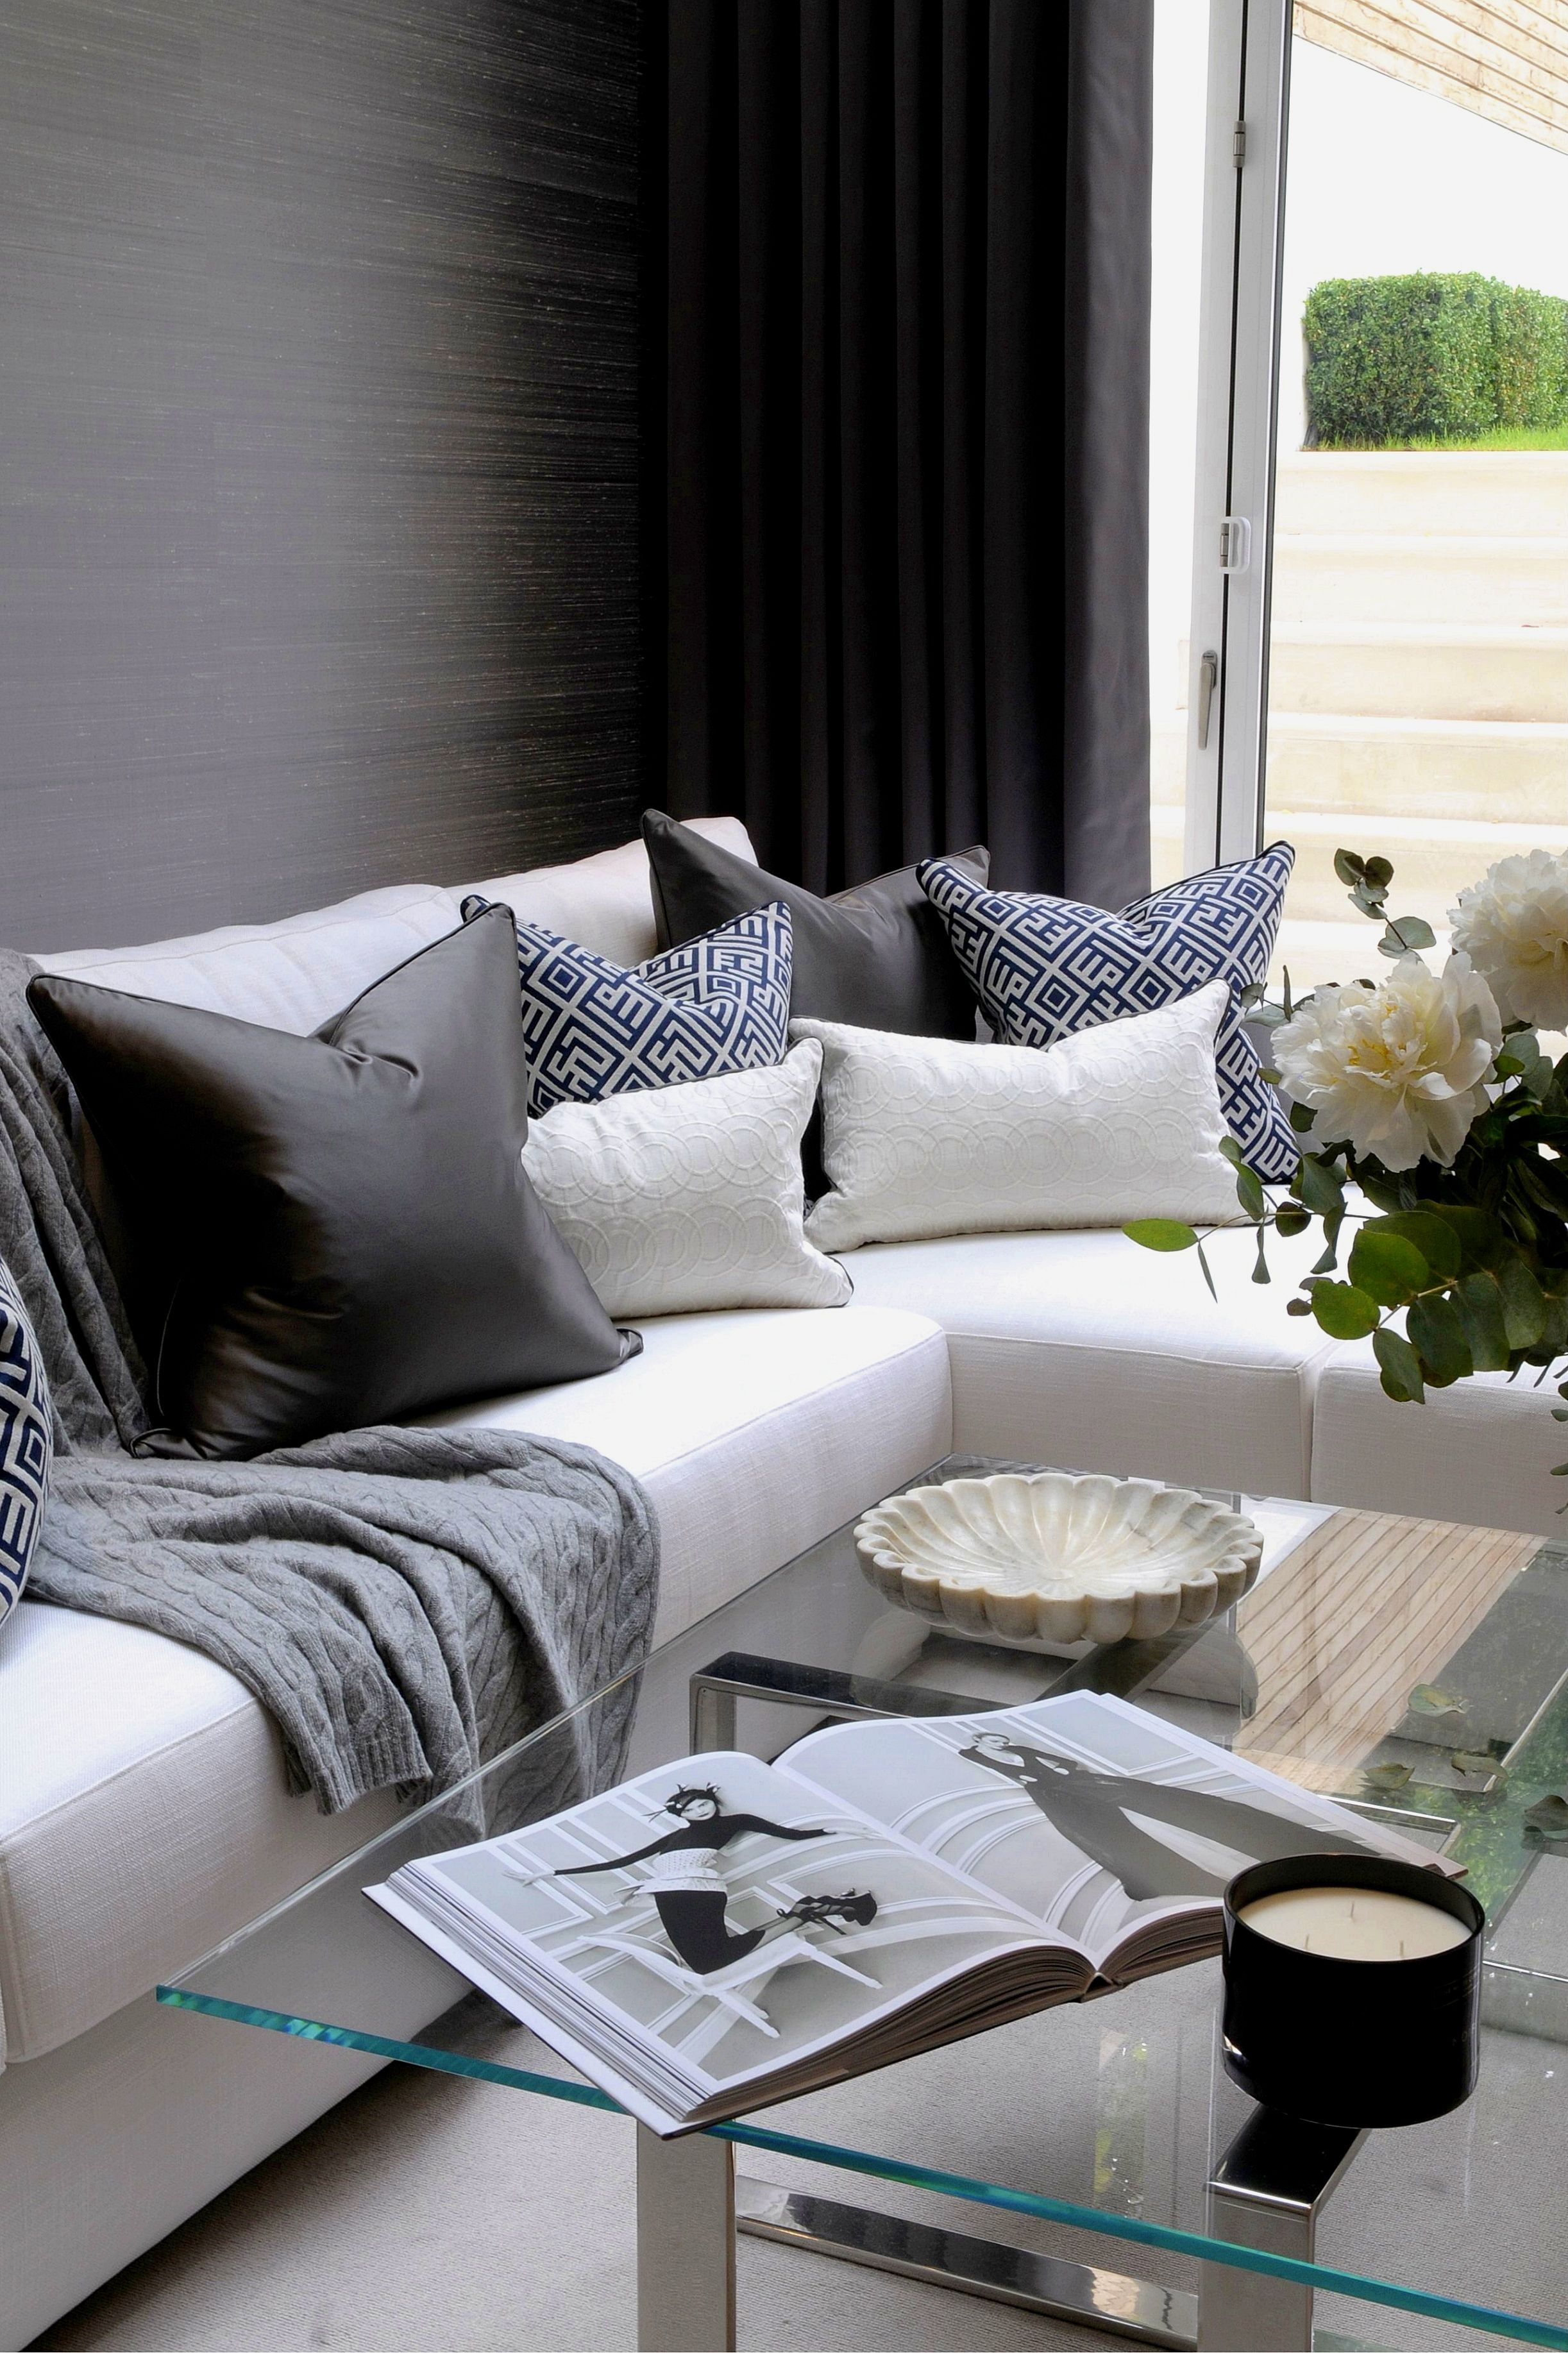 How To Organize Your Living Room And Keep It Clutter Free Cushions On Sofa Living Room Remodel Living Room Decor Tips #organize #living #room #furniture